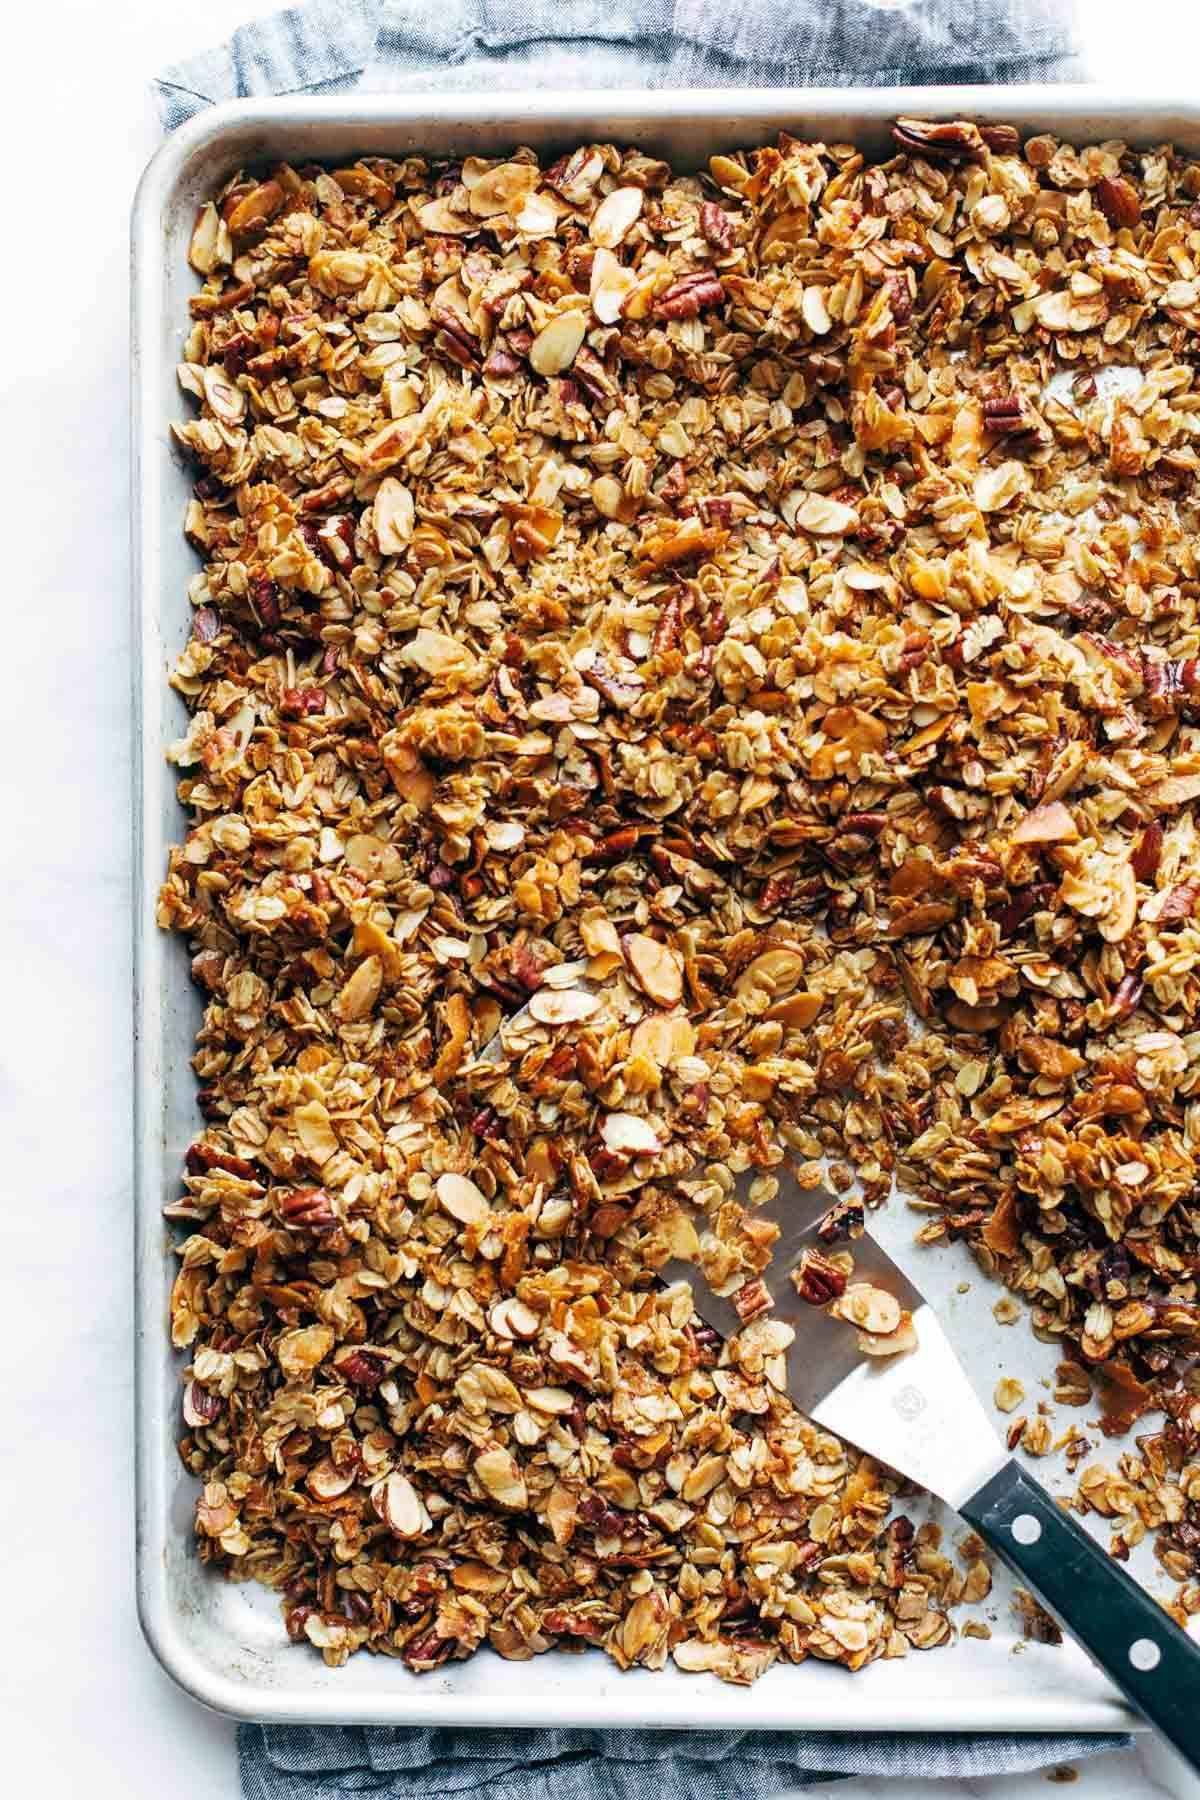 Baked granola on a baking sheet.